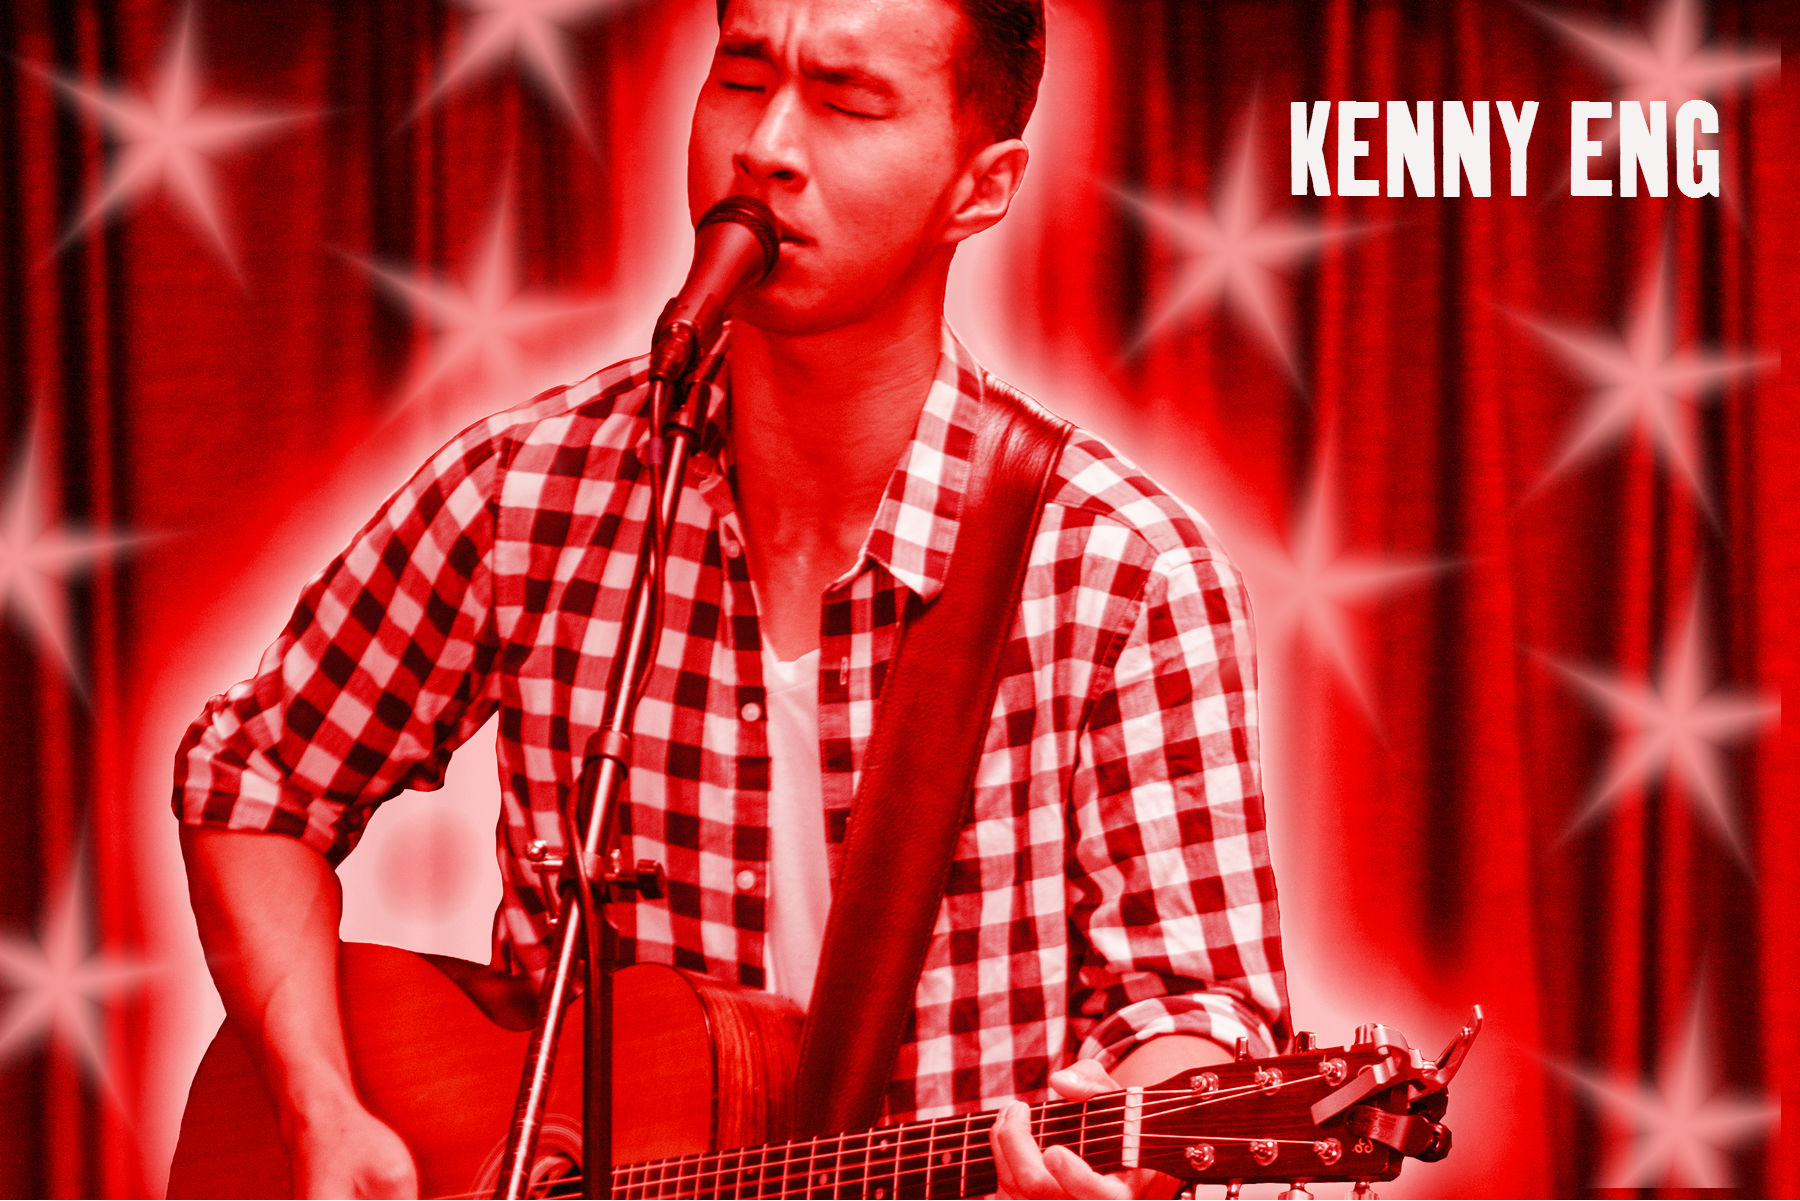 Kenny Eng in Red - Copy.jpg